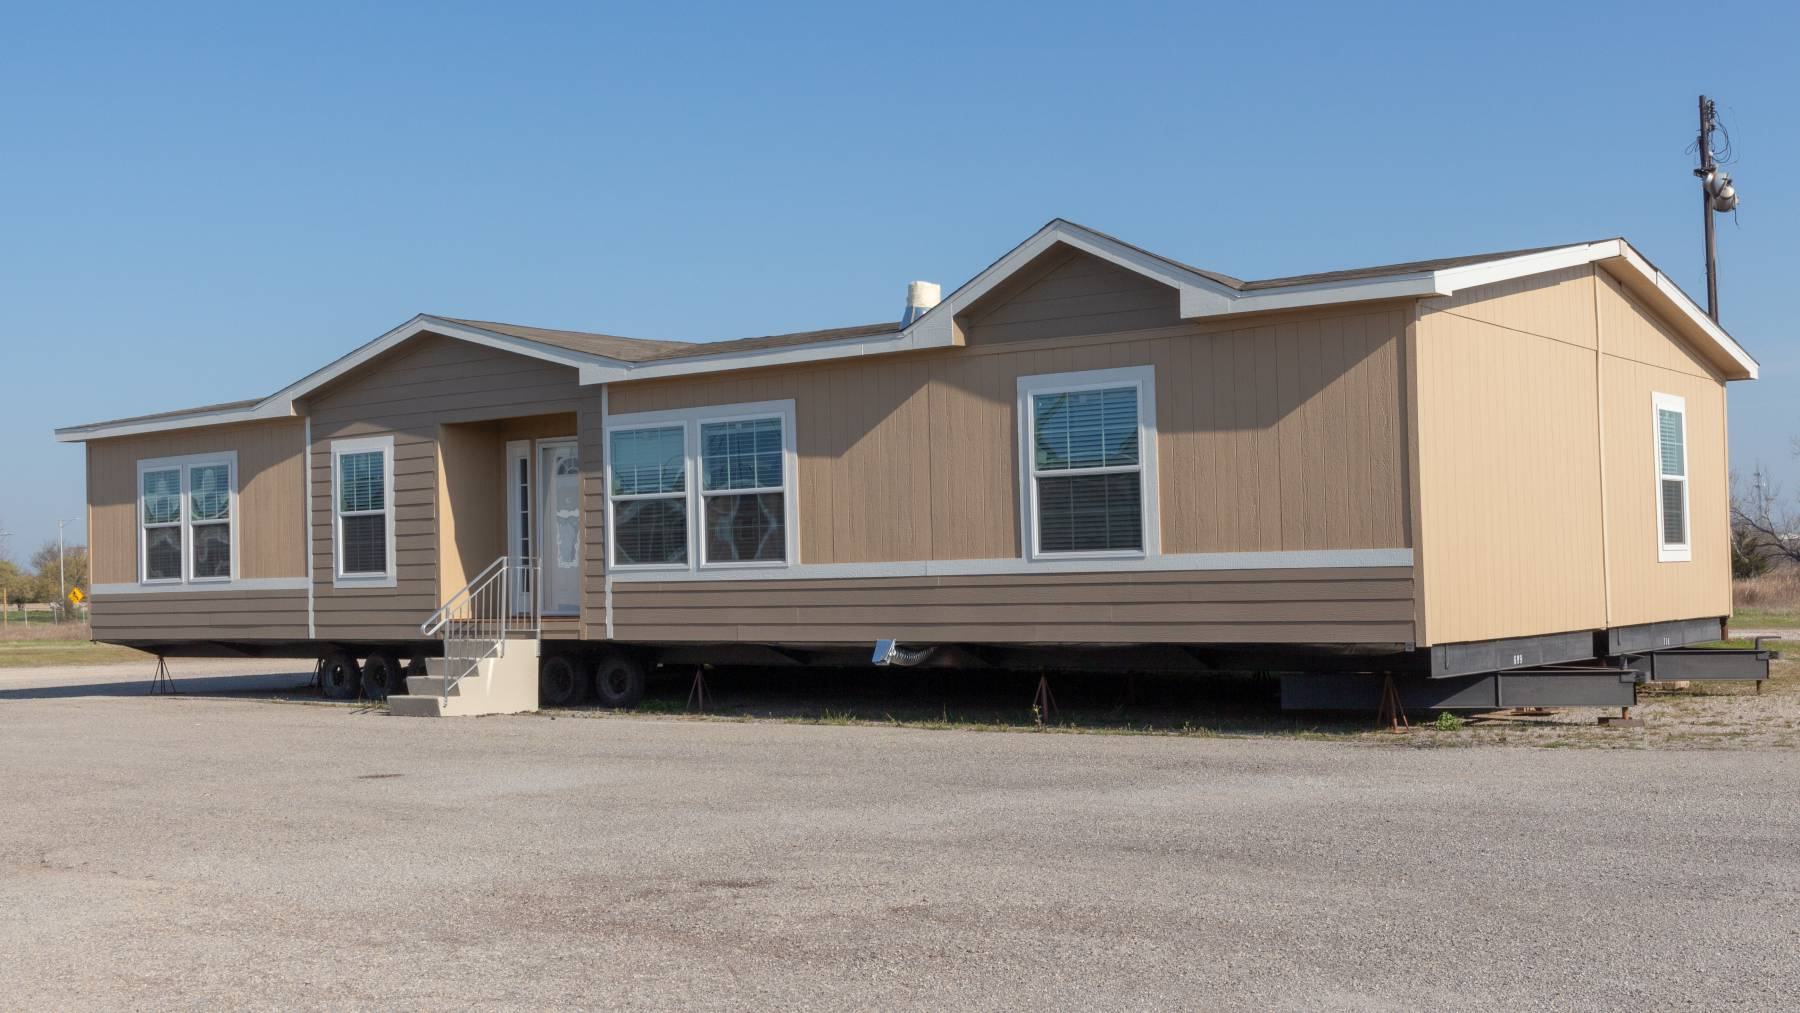 10 Tricks to Sell Your Mobile Home Better (and Faster)